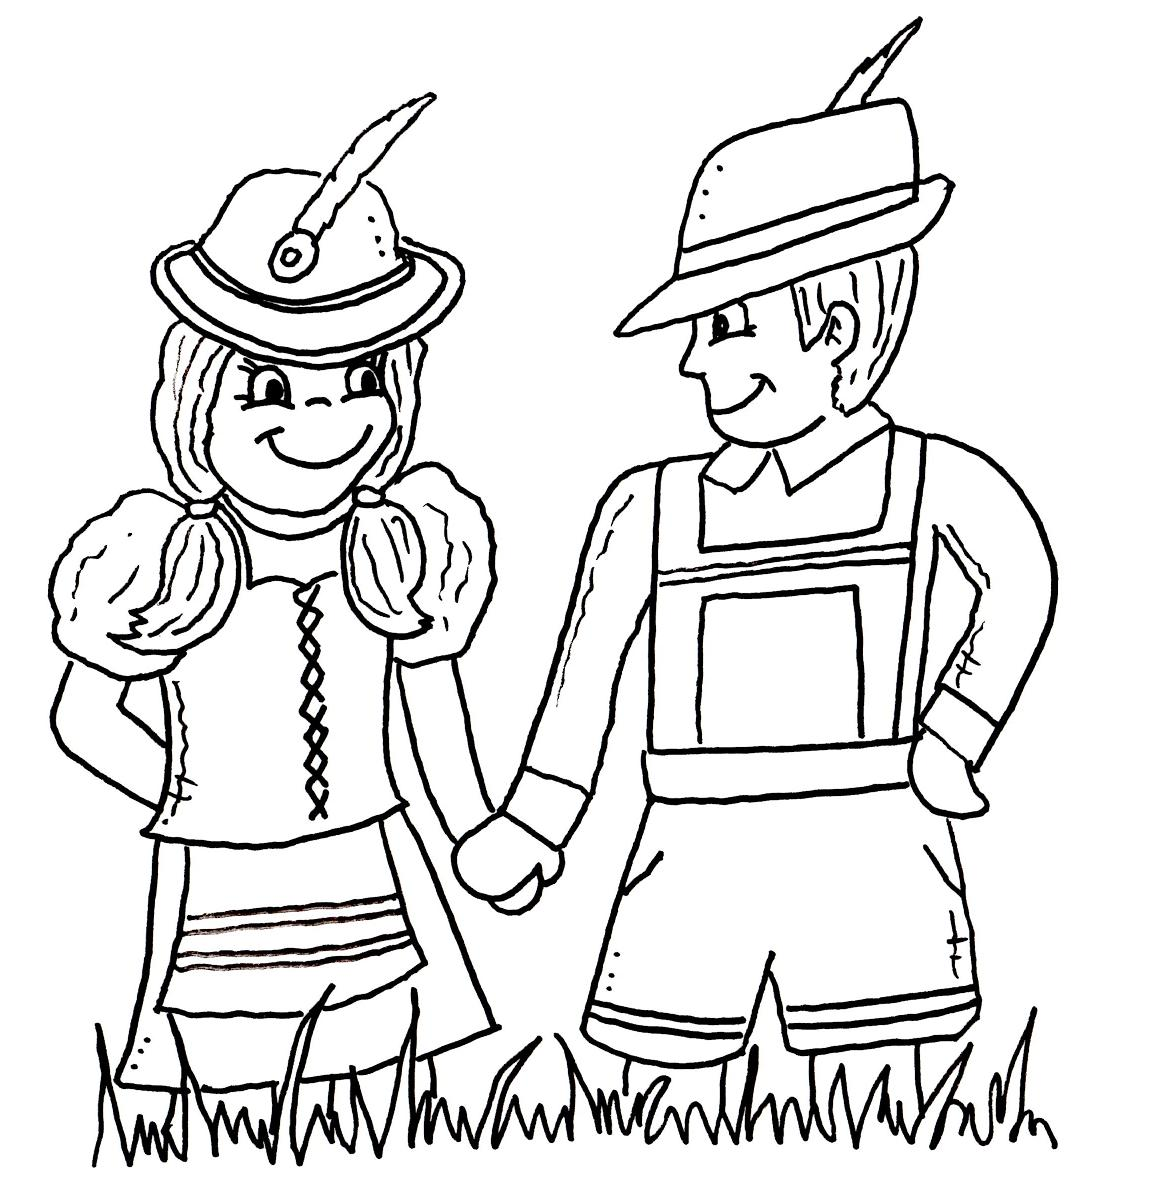 Germ Coloring Pages germ coloring pages for kids 2 germ coloring – Map of Germany for Kids